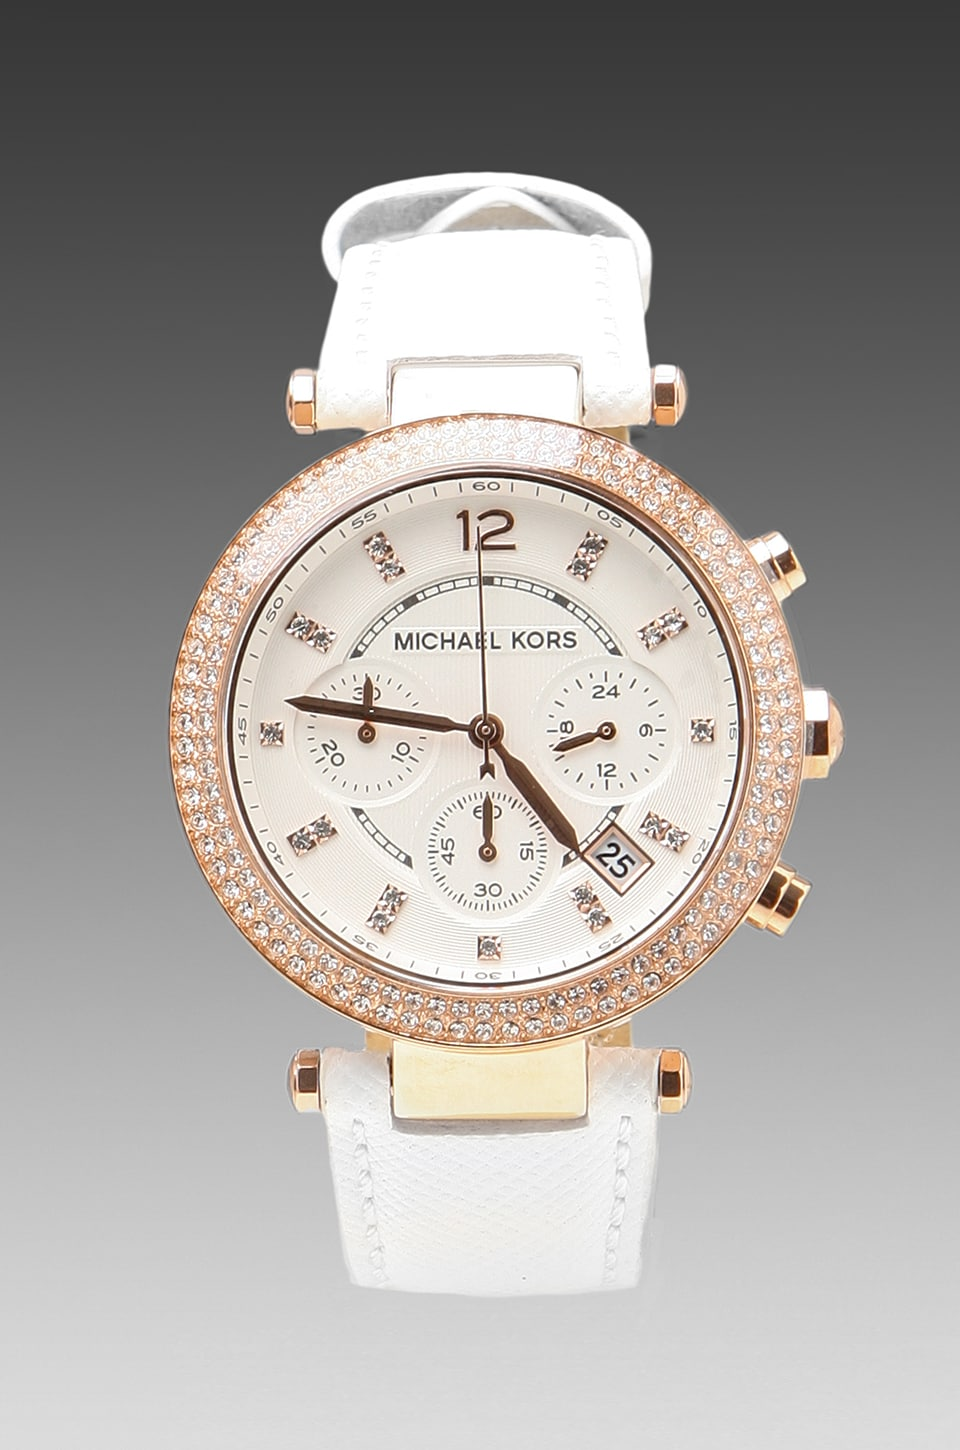 Michael Kors MK2281 in White/Rose Gold